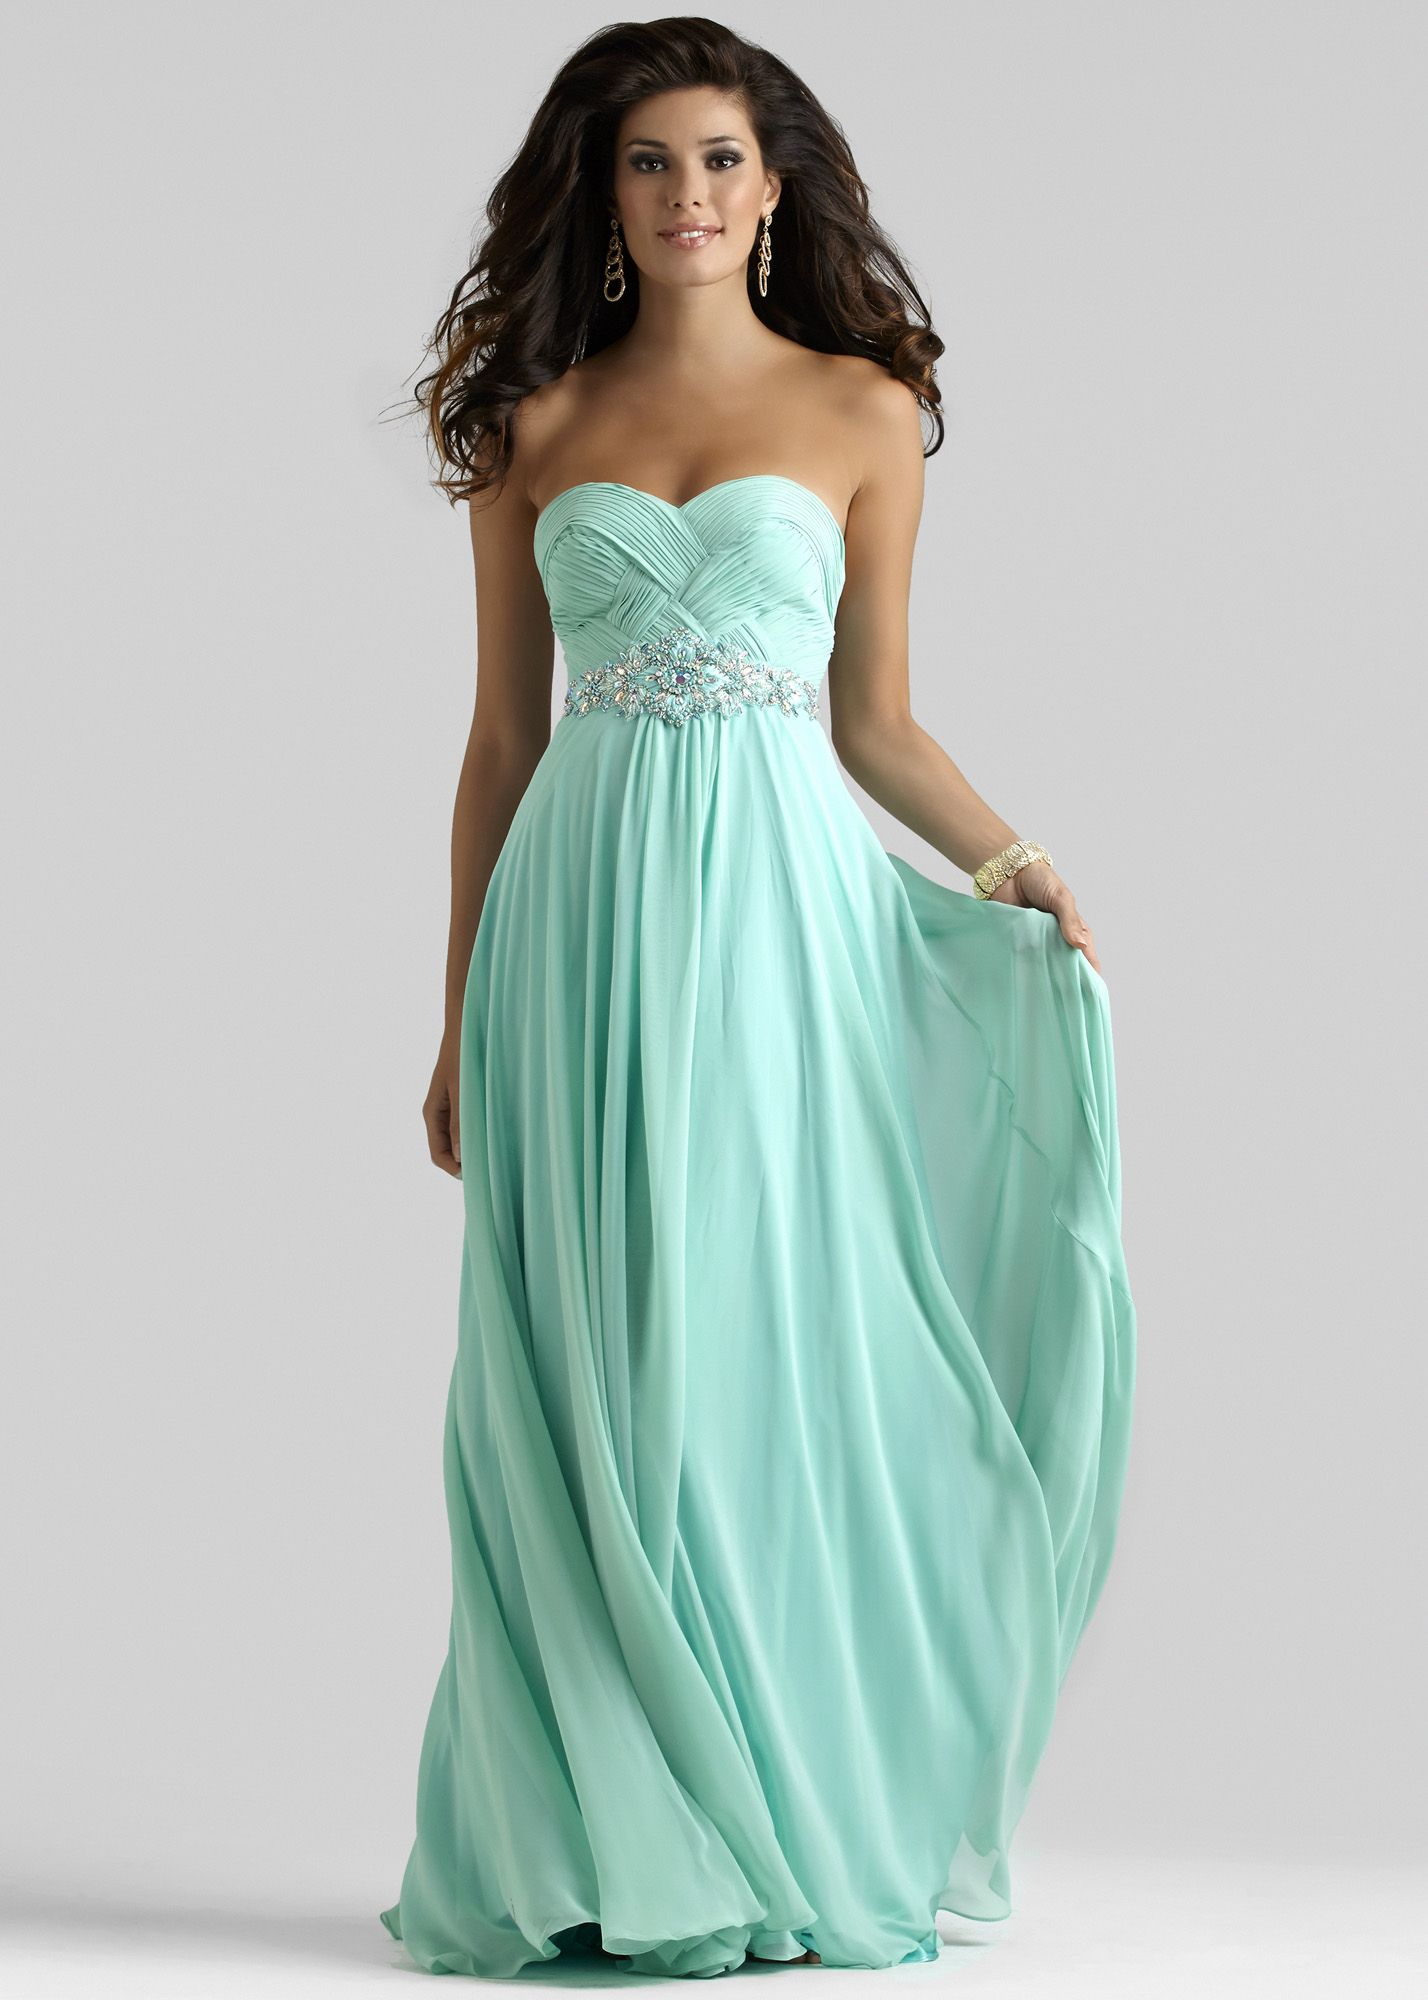 Mint Blue Prom Dresses - Missy Dress